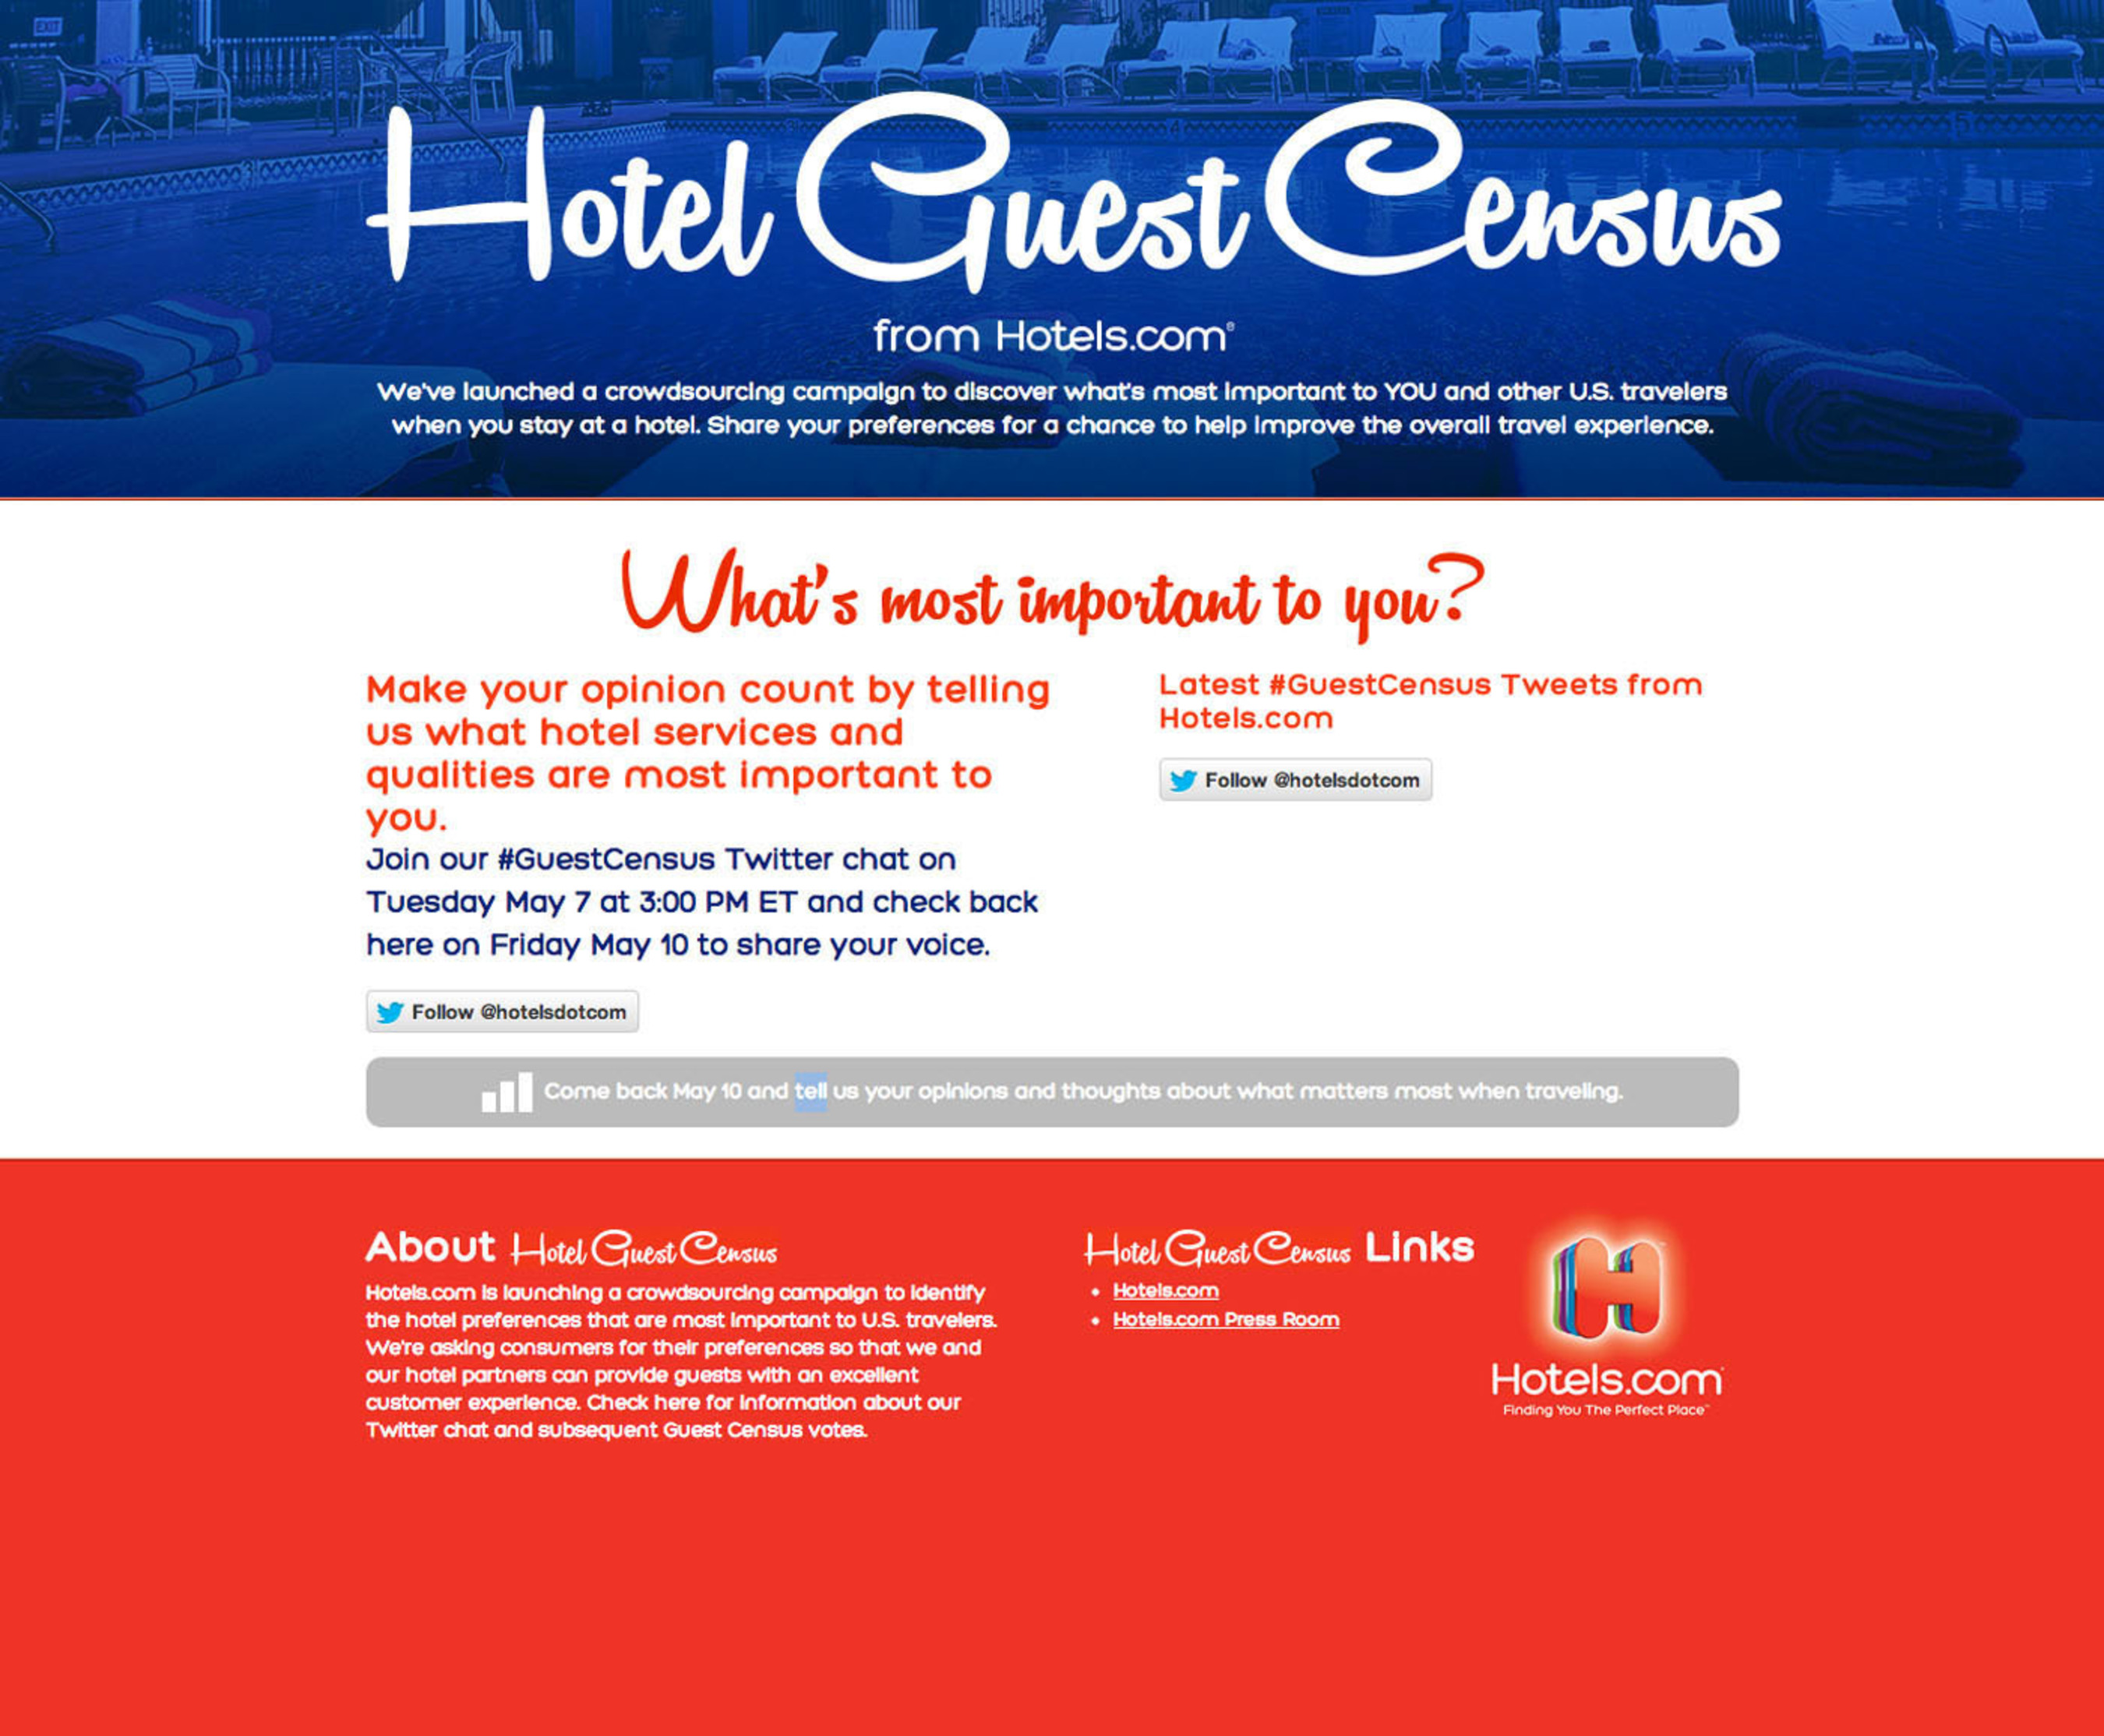 Participate in the Hotels.com #GuestCensus Twitter chat for the chance to win promotional giveaways by visiting  ...